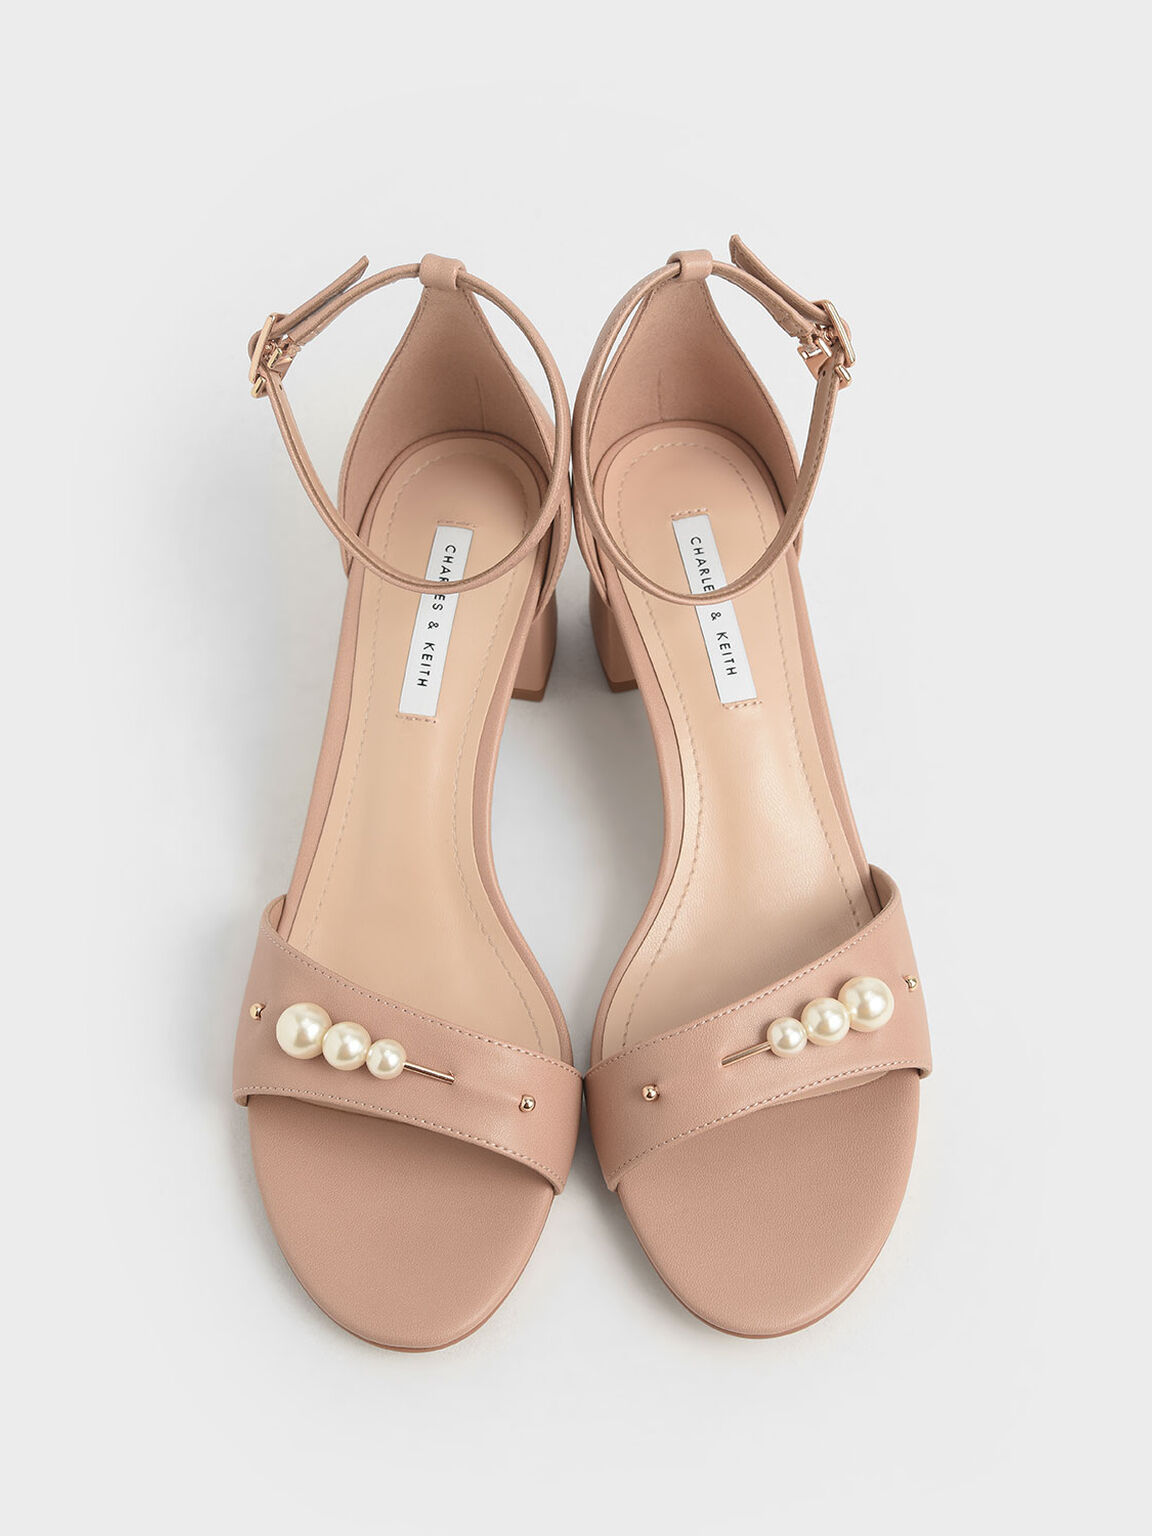 Embellished Block Heel Sandals, Nude, hi-res